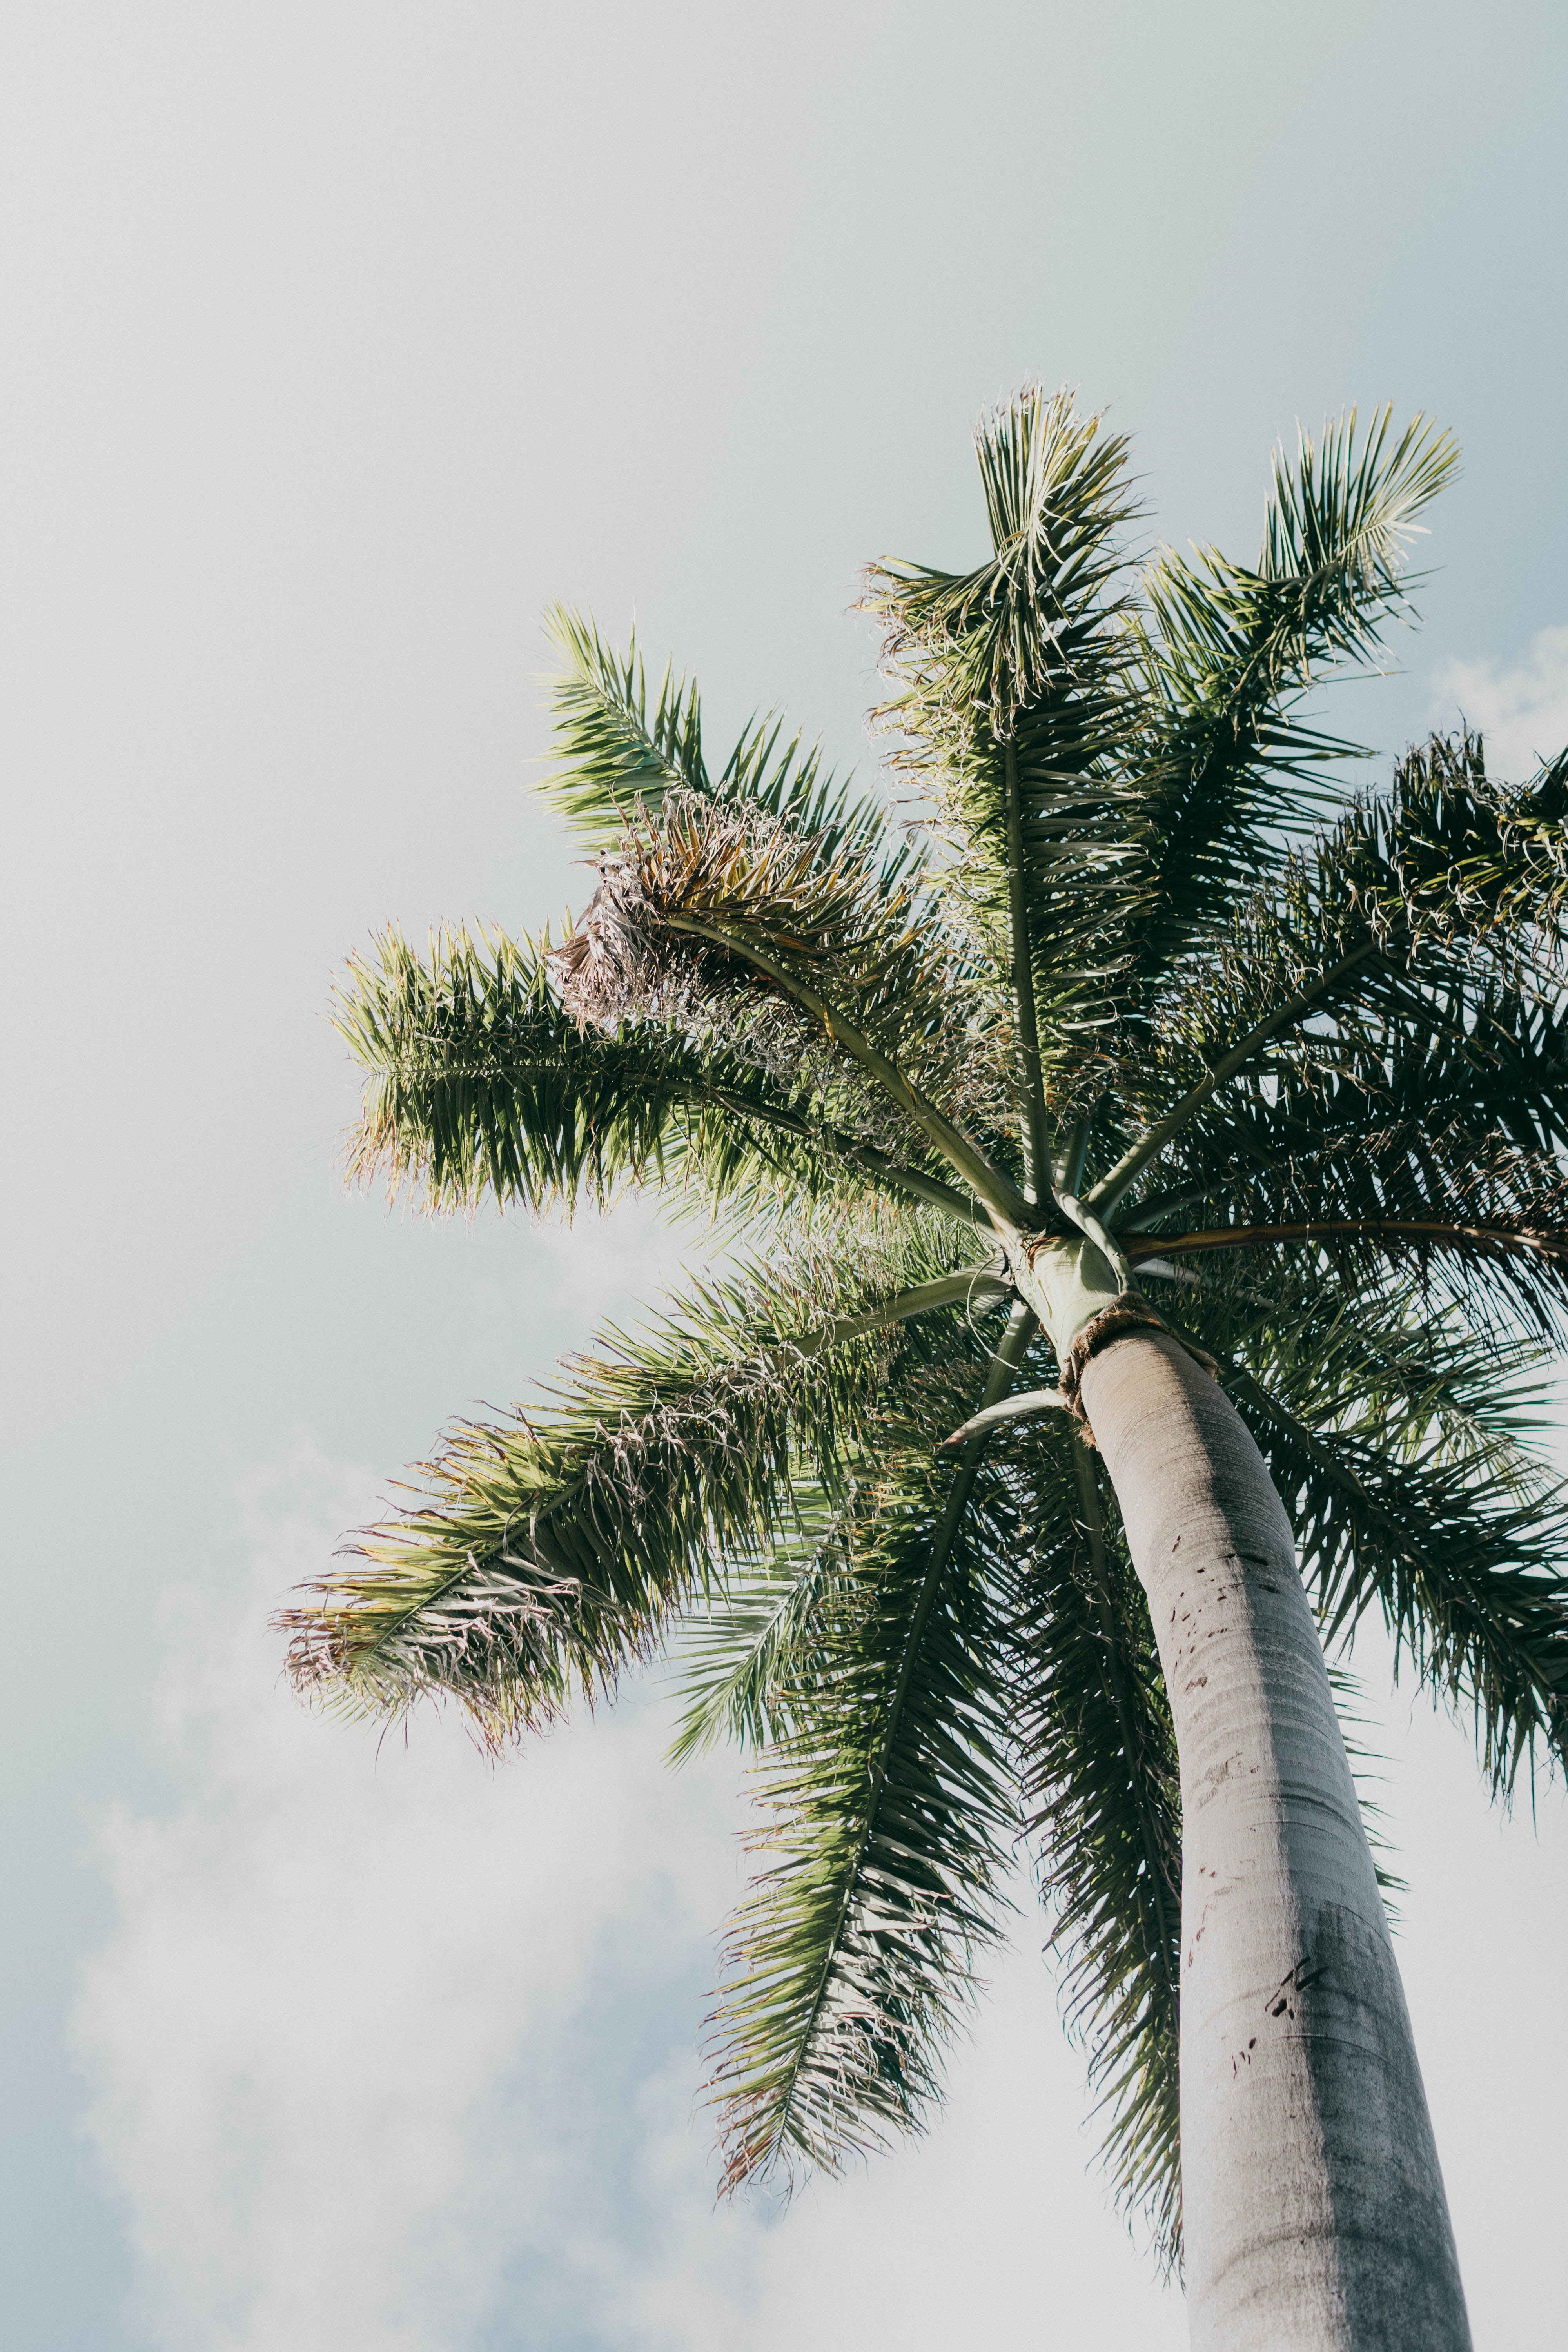 low-angle photography of a palm tree